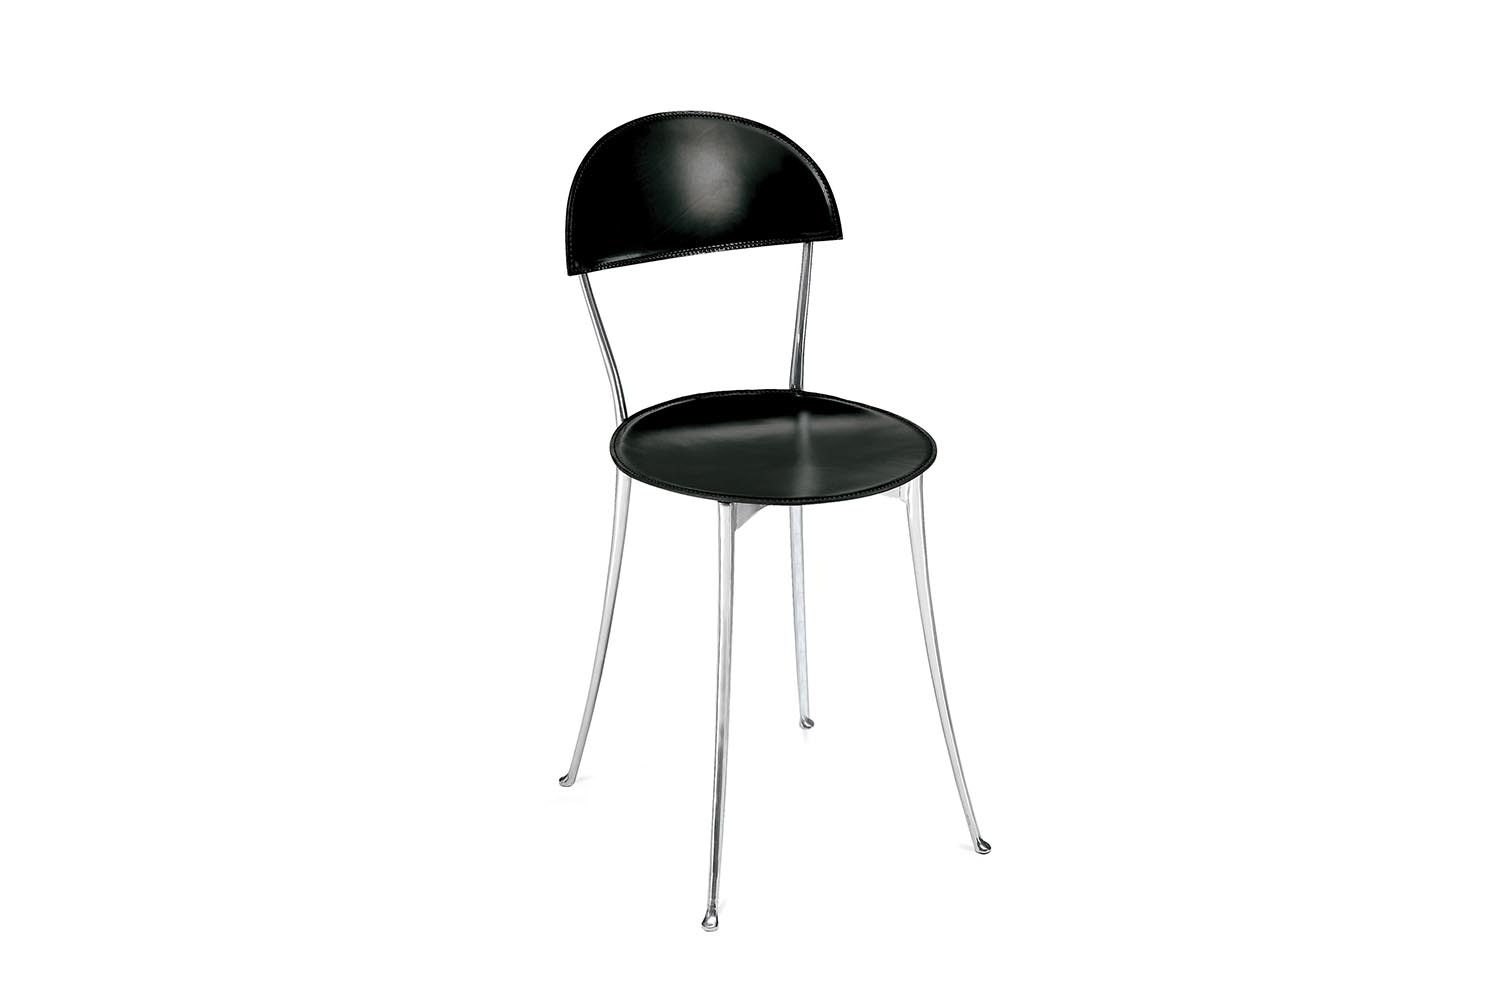 Tonietta Chair by Enzo Mari for Zanotta